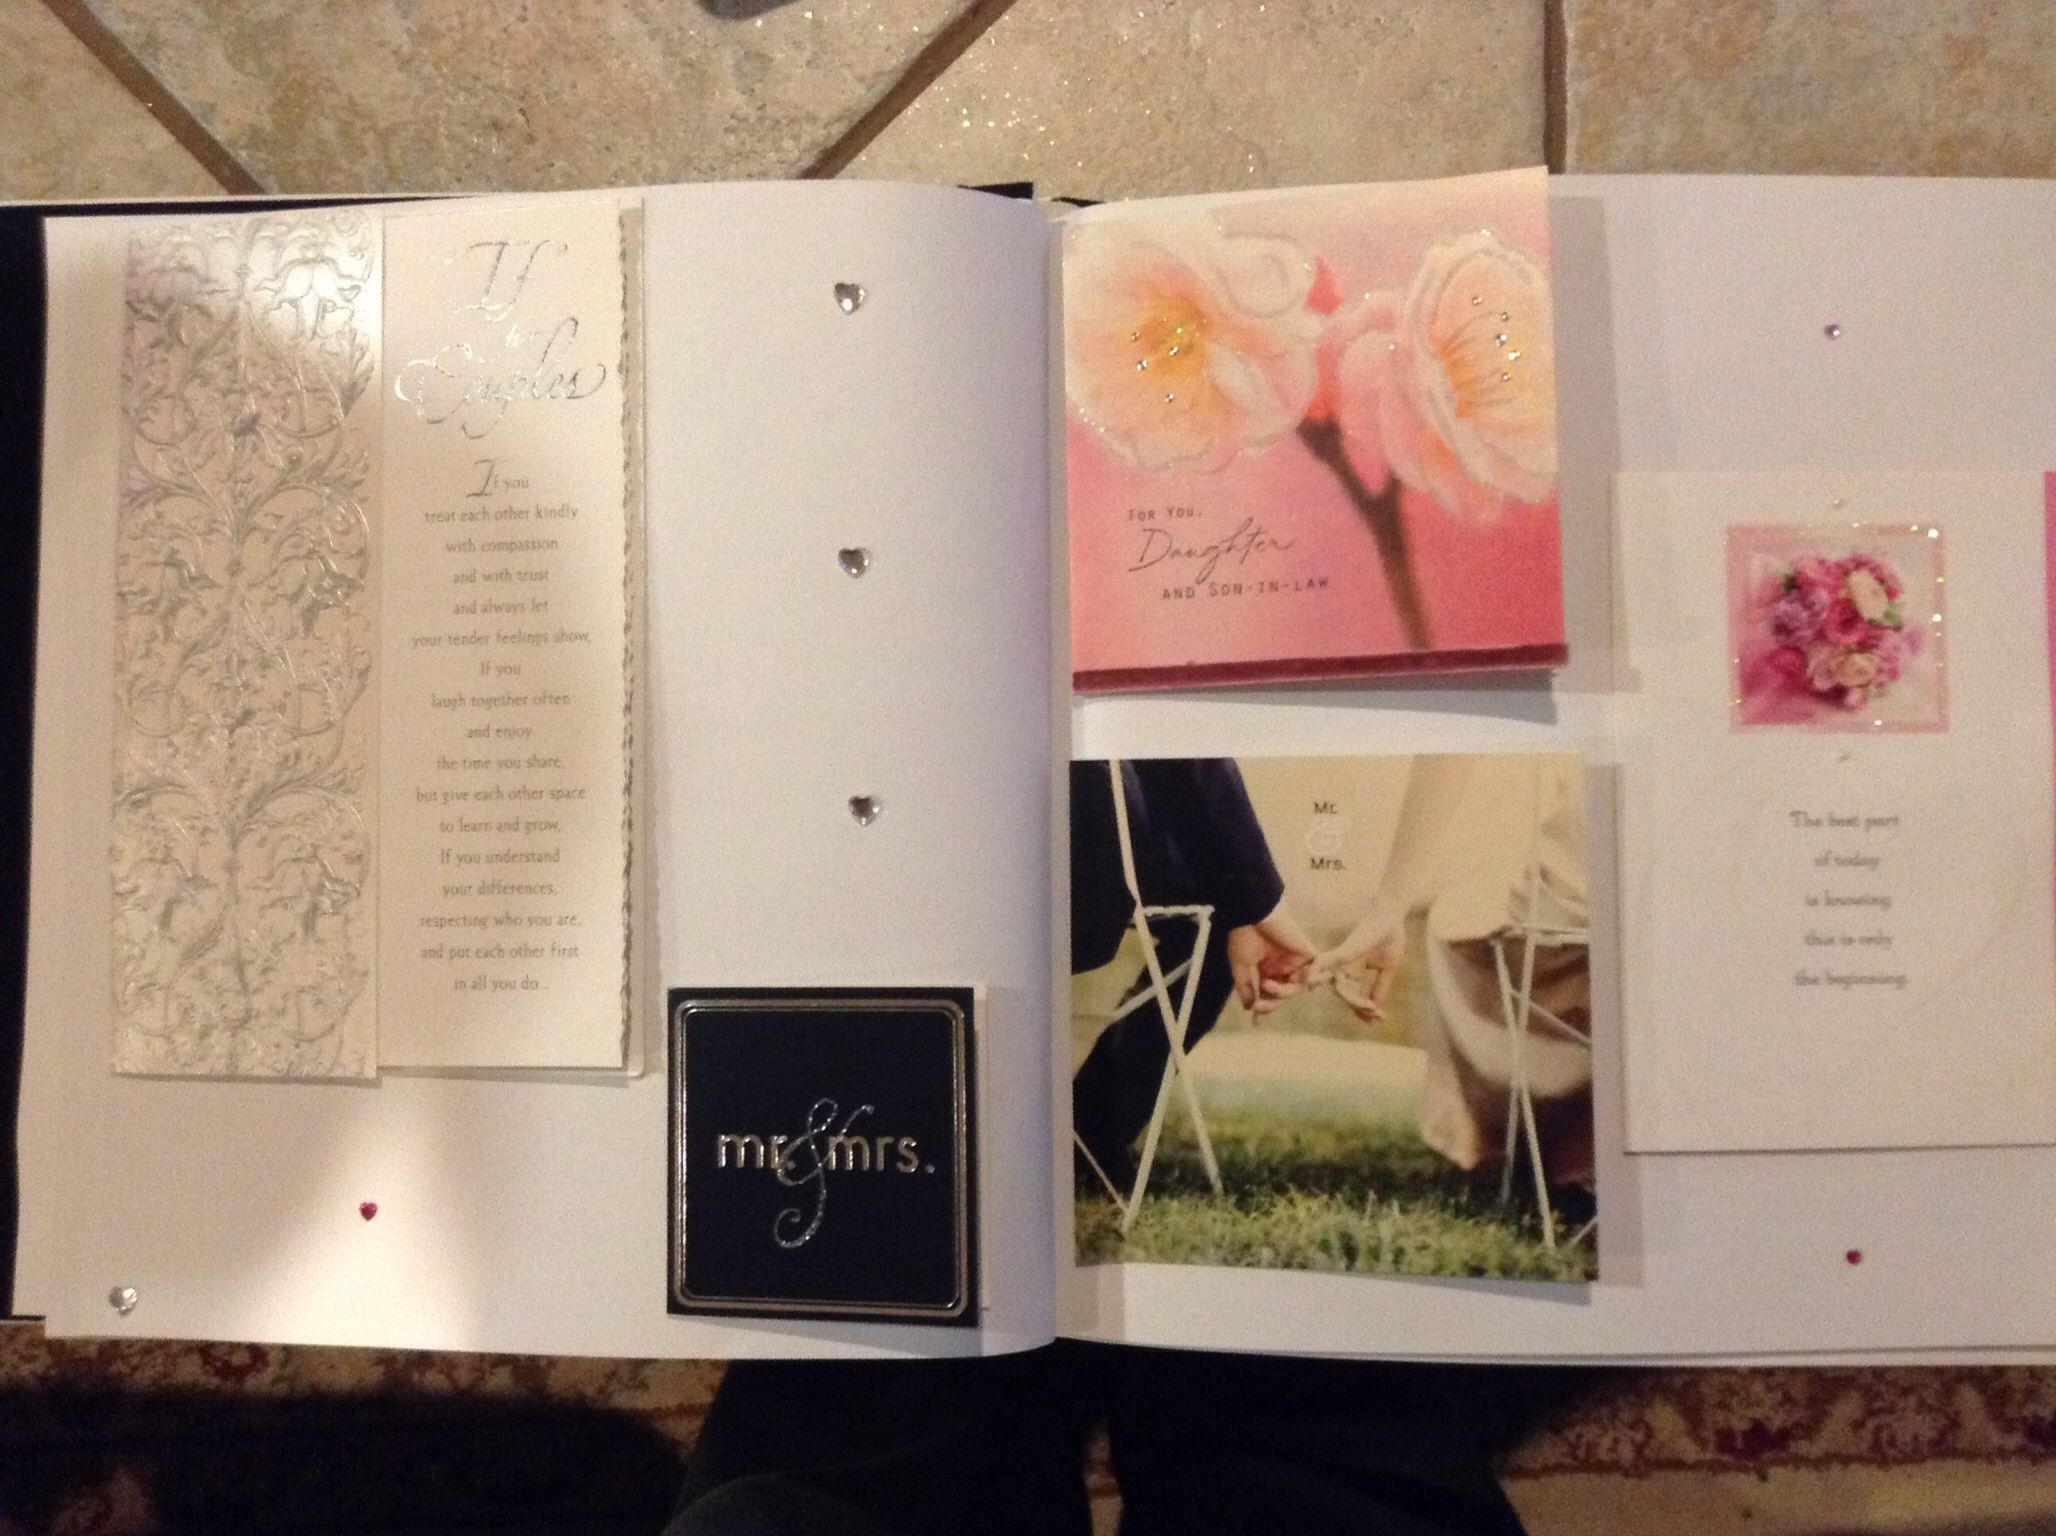 Stick all your shower and wedding cards in a scrap book! Better than keeping them in a box forever...